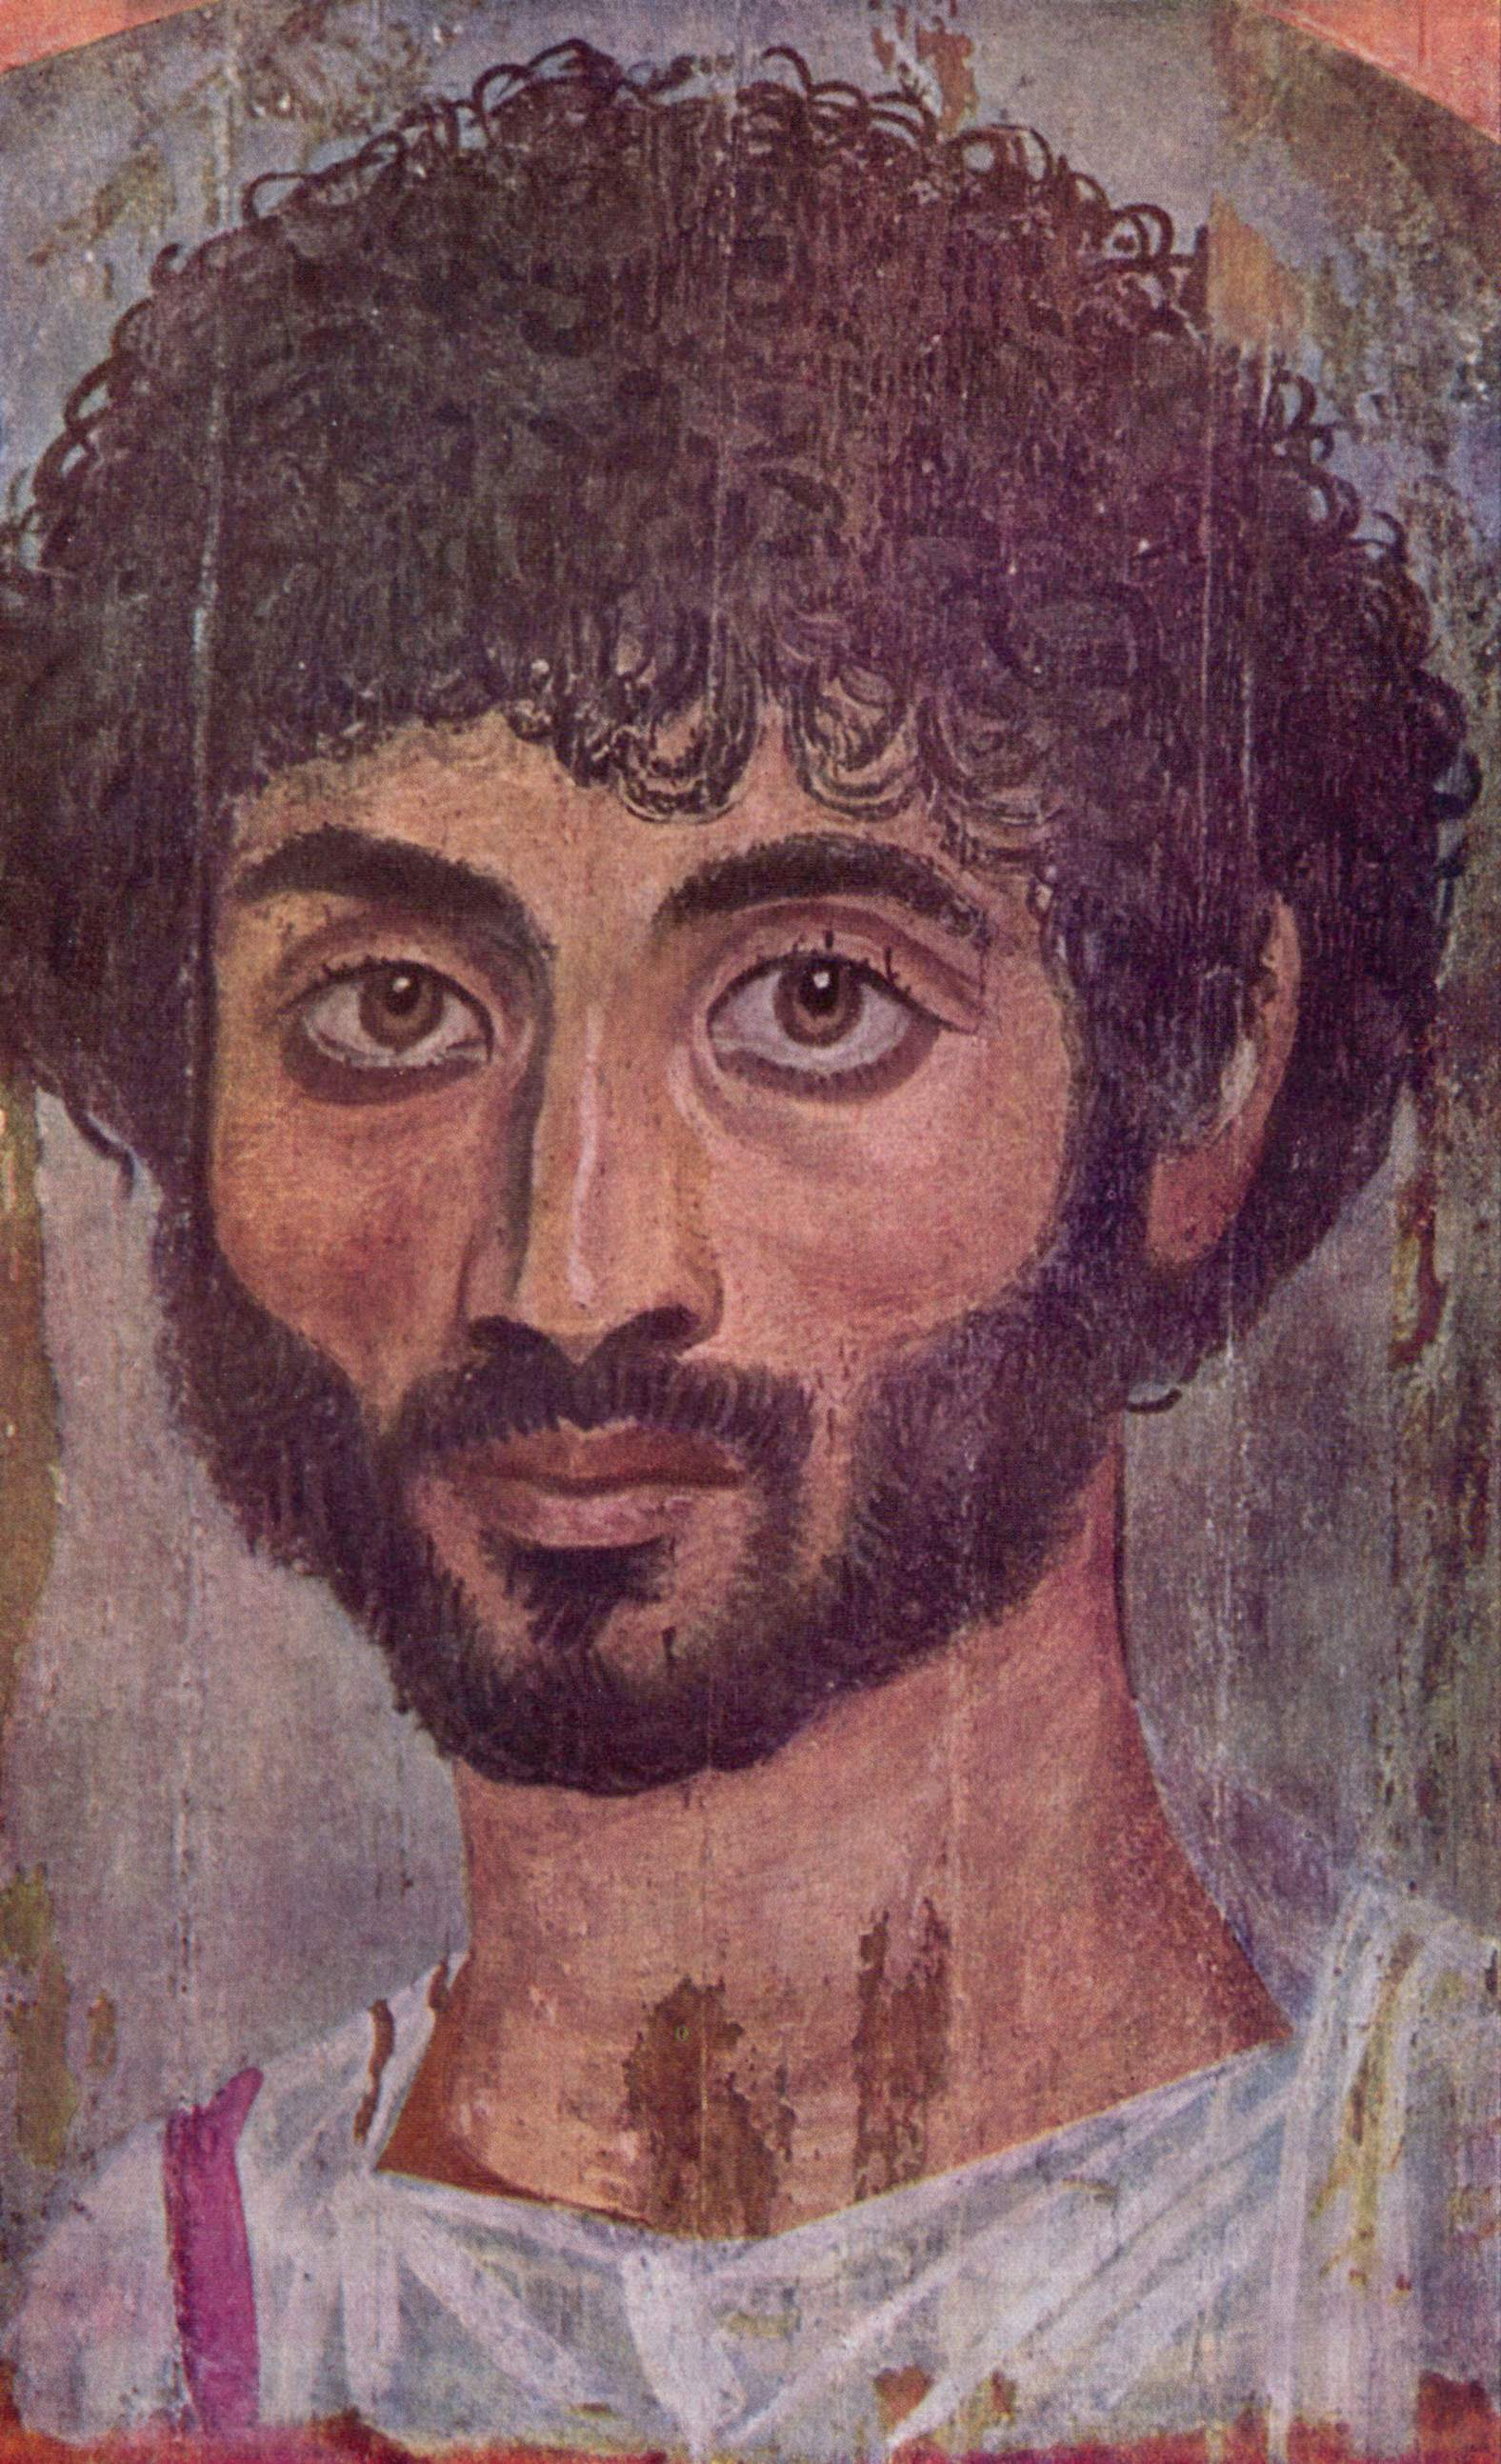 Portrait of a man from the Fayum province, Metropolitan Museum of Art.